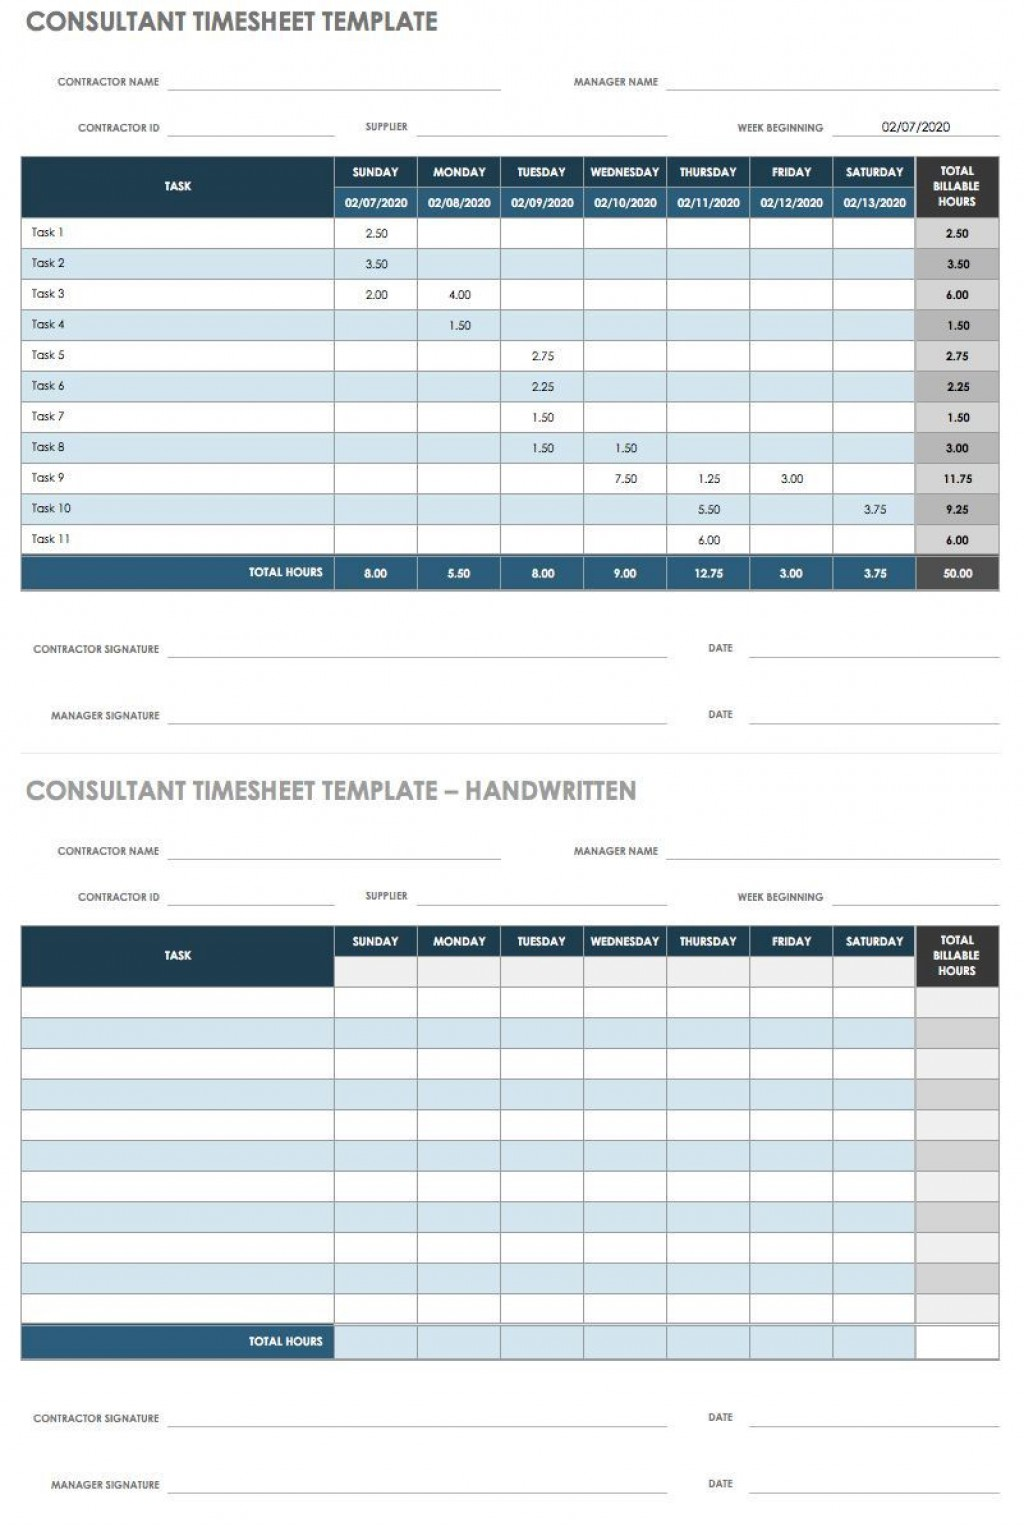 006 Astounding Monthly Timesheet Excel Template High Def  Multiple Employee Free Semi-monthly 2020Large